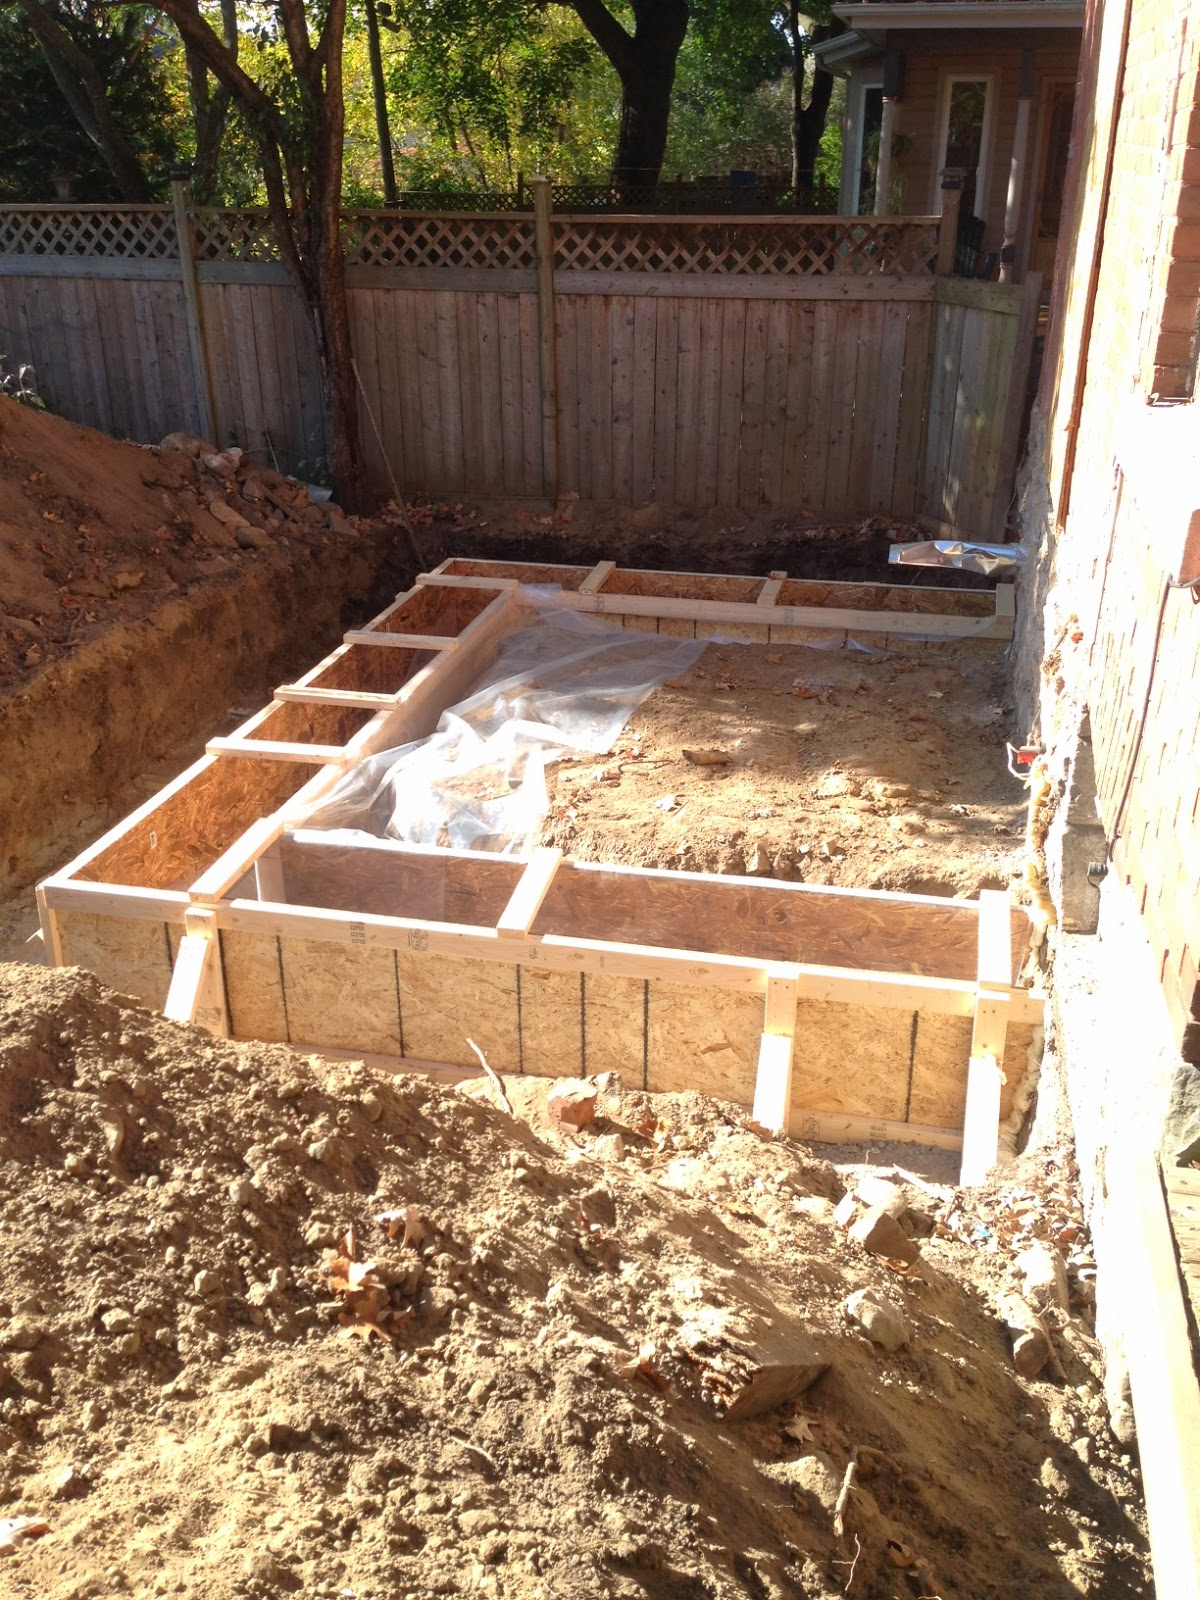 Paul Gratton Ottawa Renovation Contractor Christopher Solar Extension day 10 footings